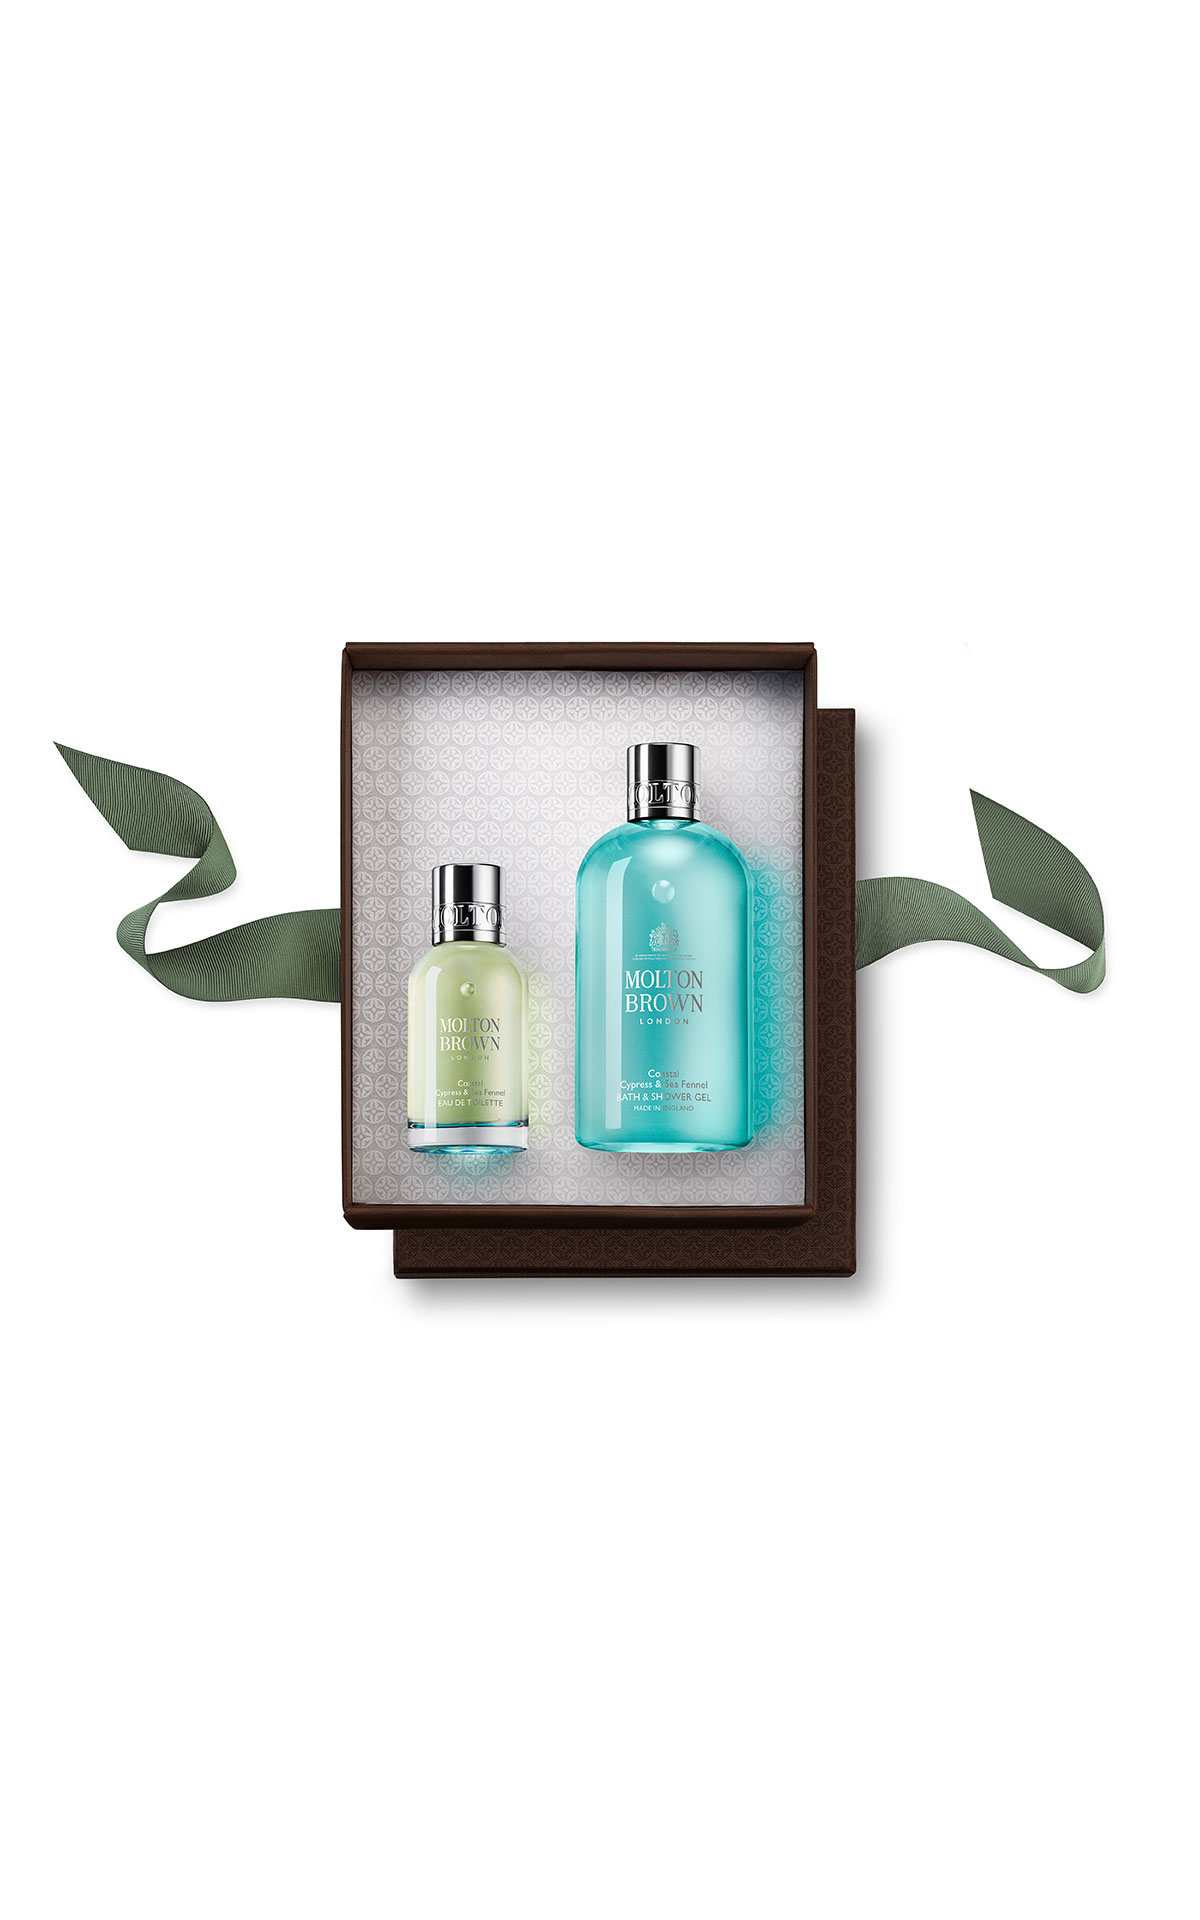 Molton Brown Coastal cypress & sea fennel fragrance rituals gift set from Bicester Village